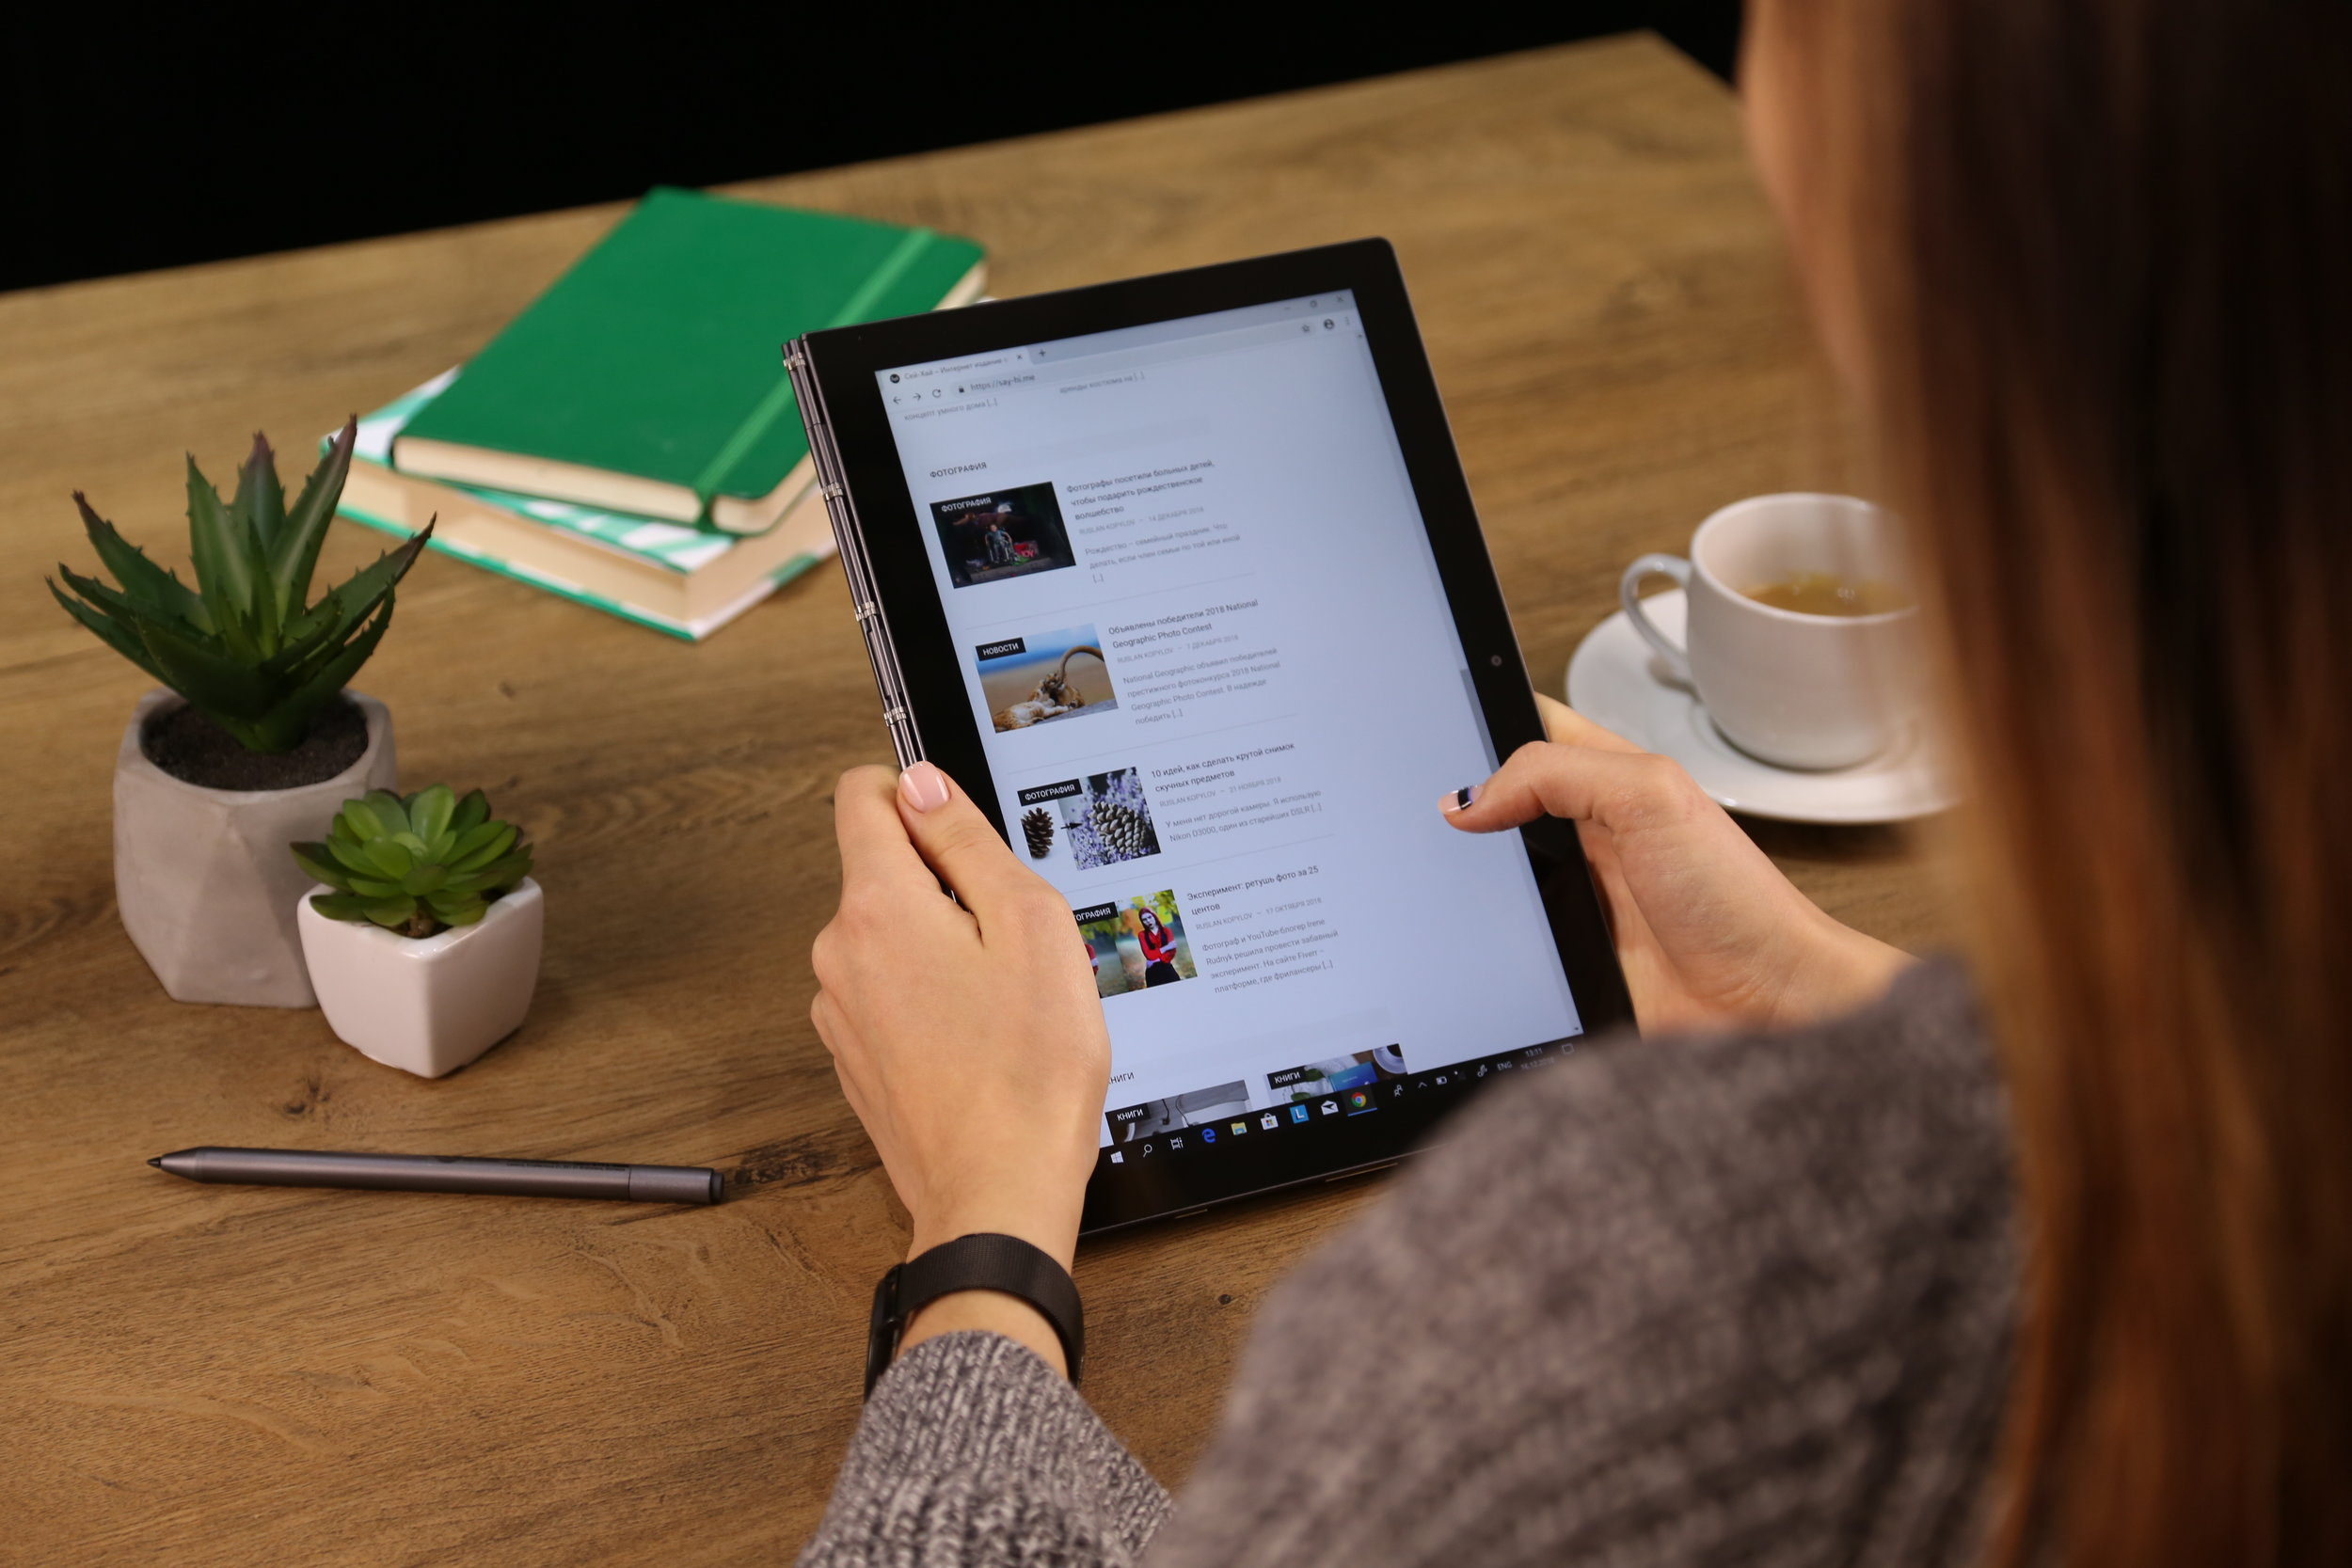 An over-the-shoulder shot of a woman scrolling through her iPad at a desk